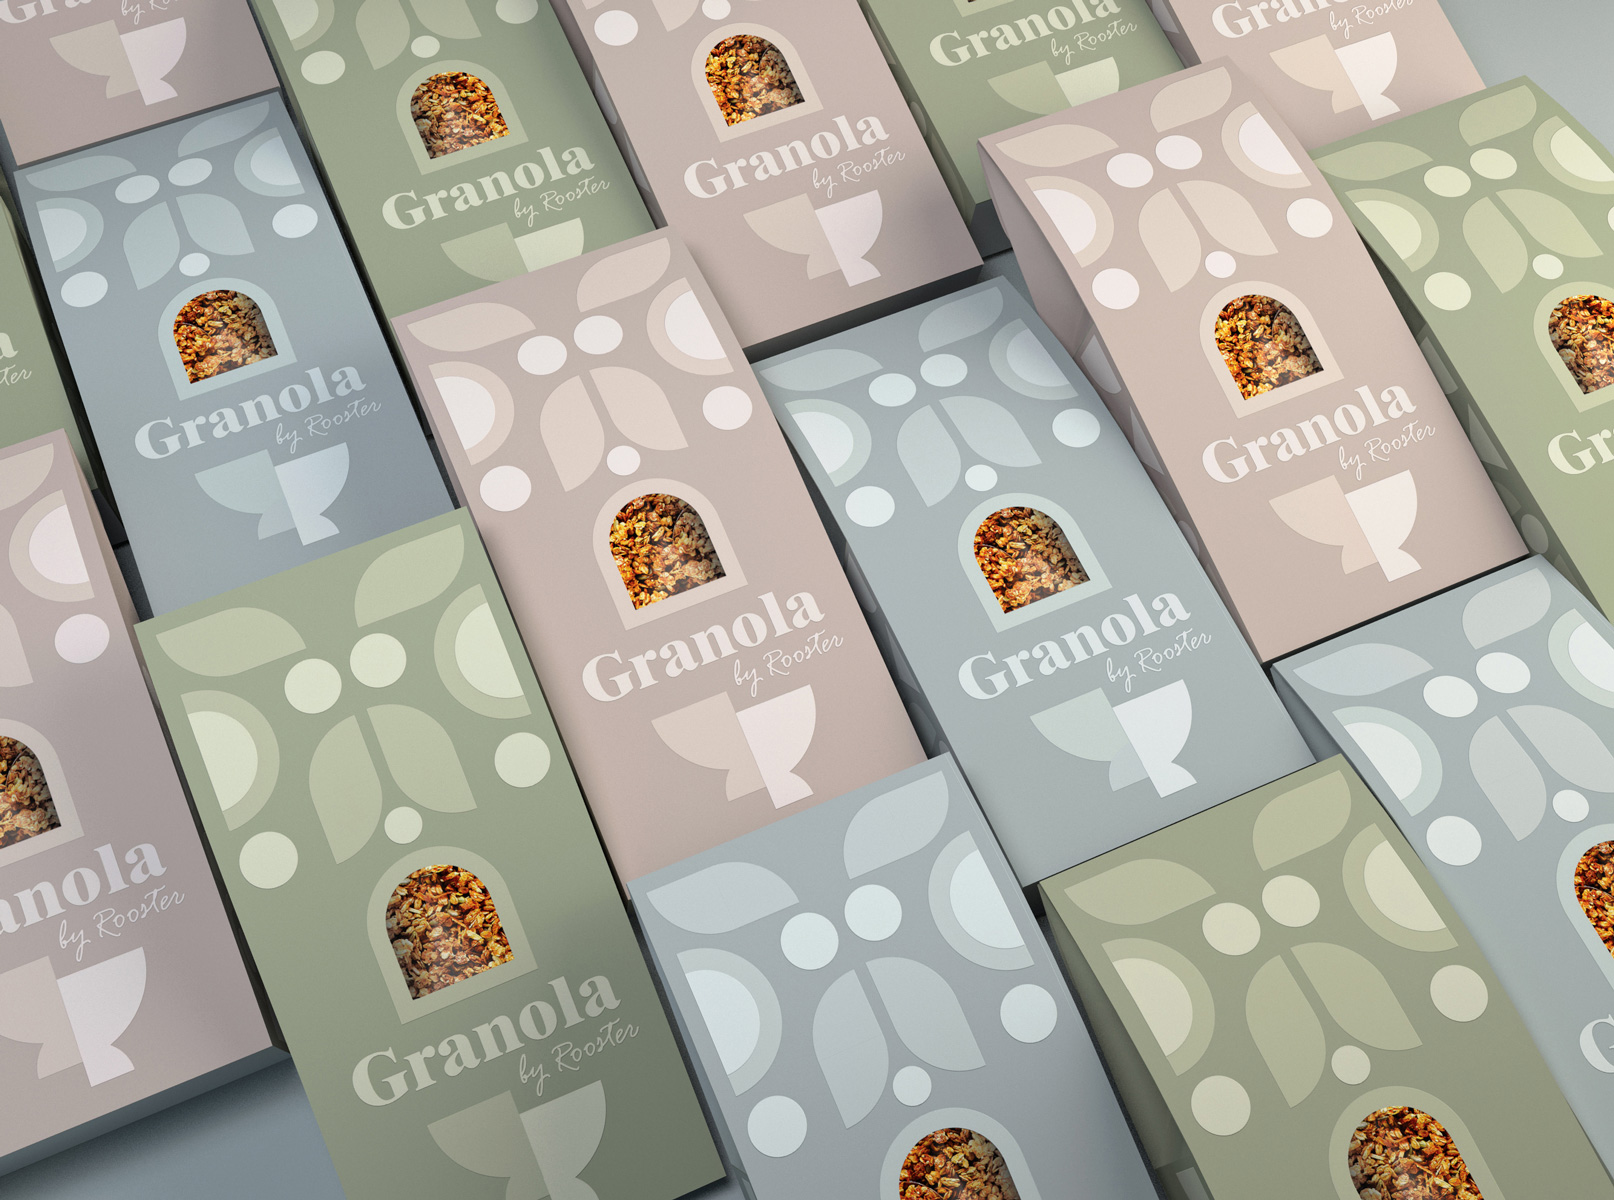 Design Studio CreativeByDefinition Creates New Packaging for Granola by Rooster